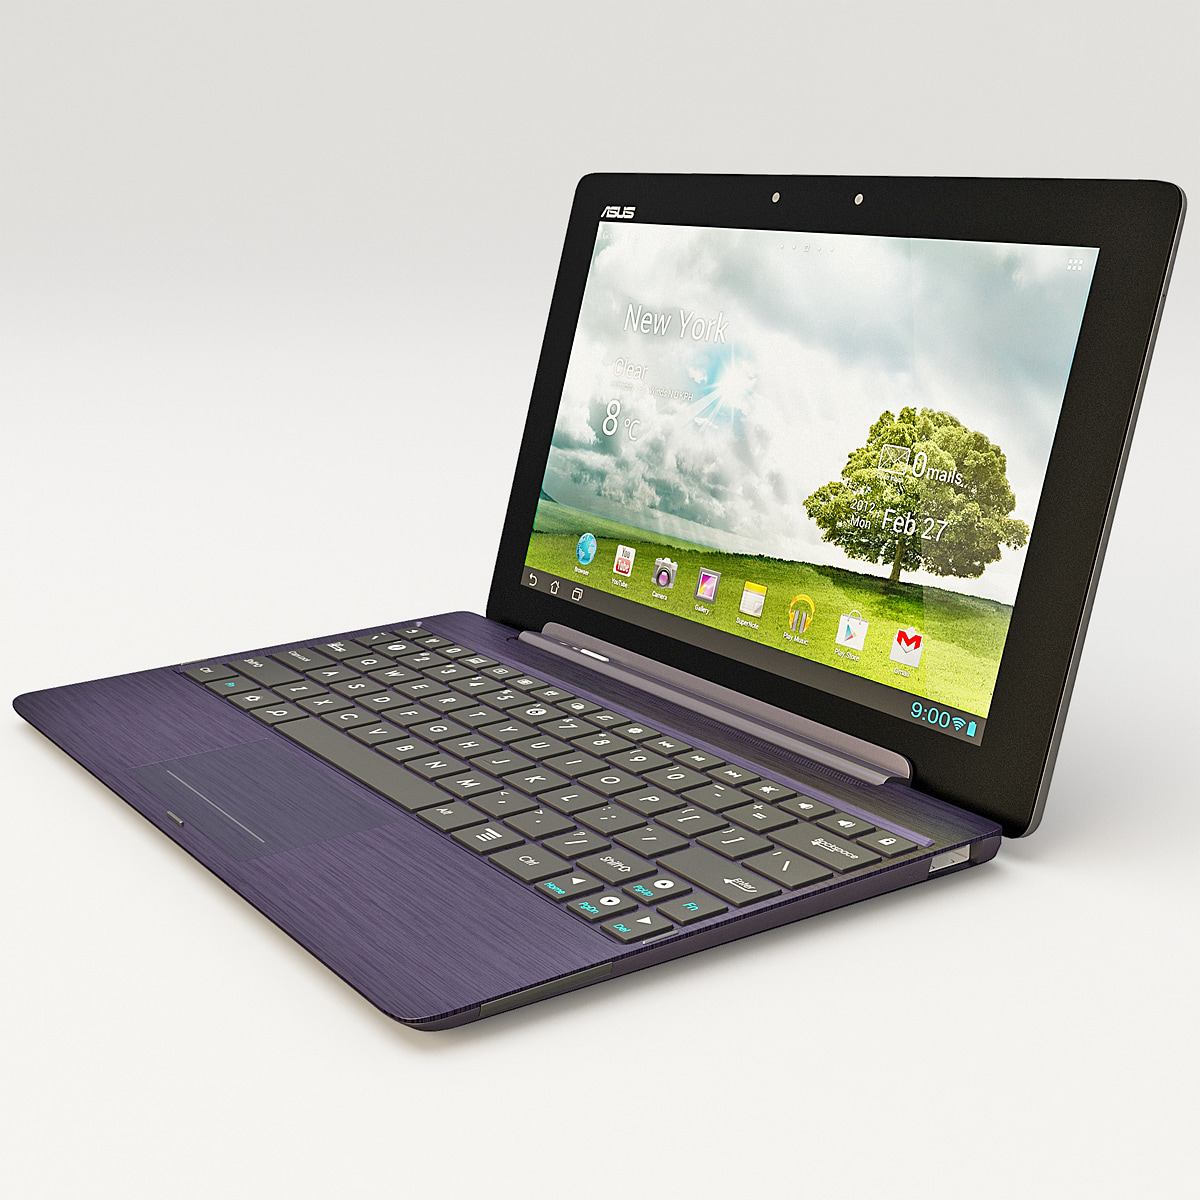 Tablet Asus Transformer Pad Infinity Set_2.jpg